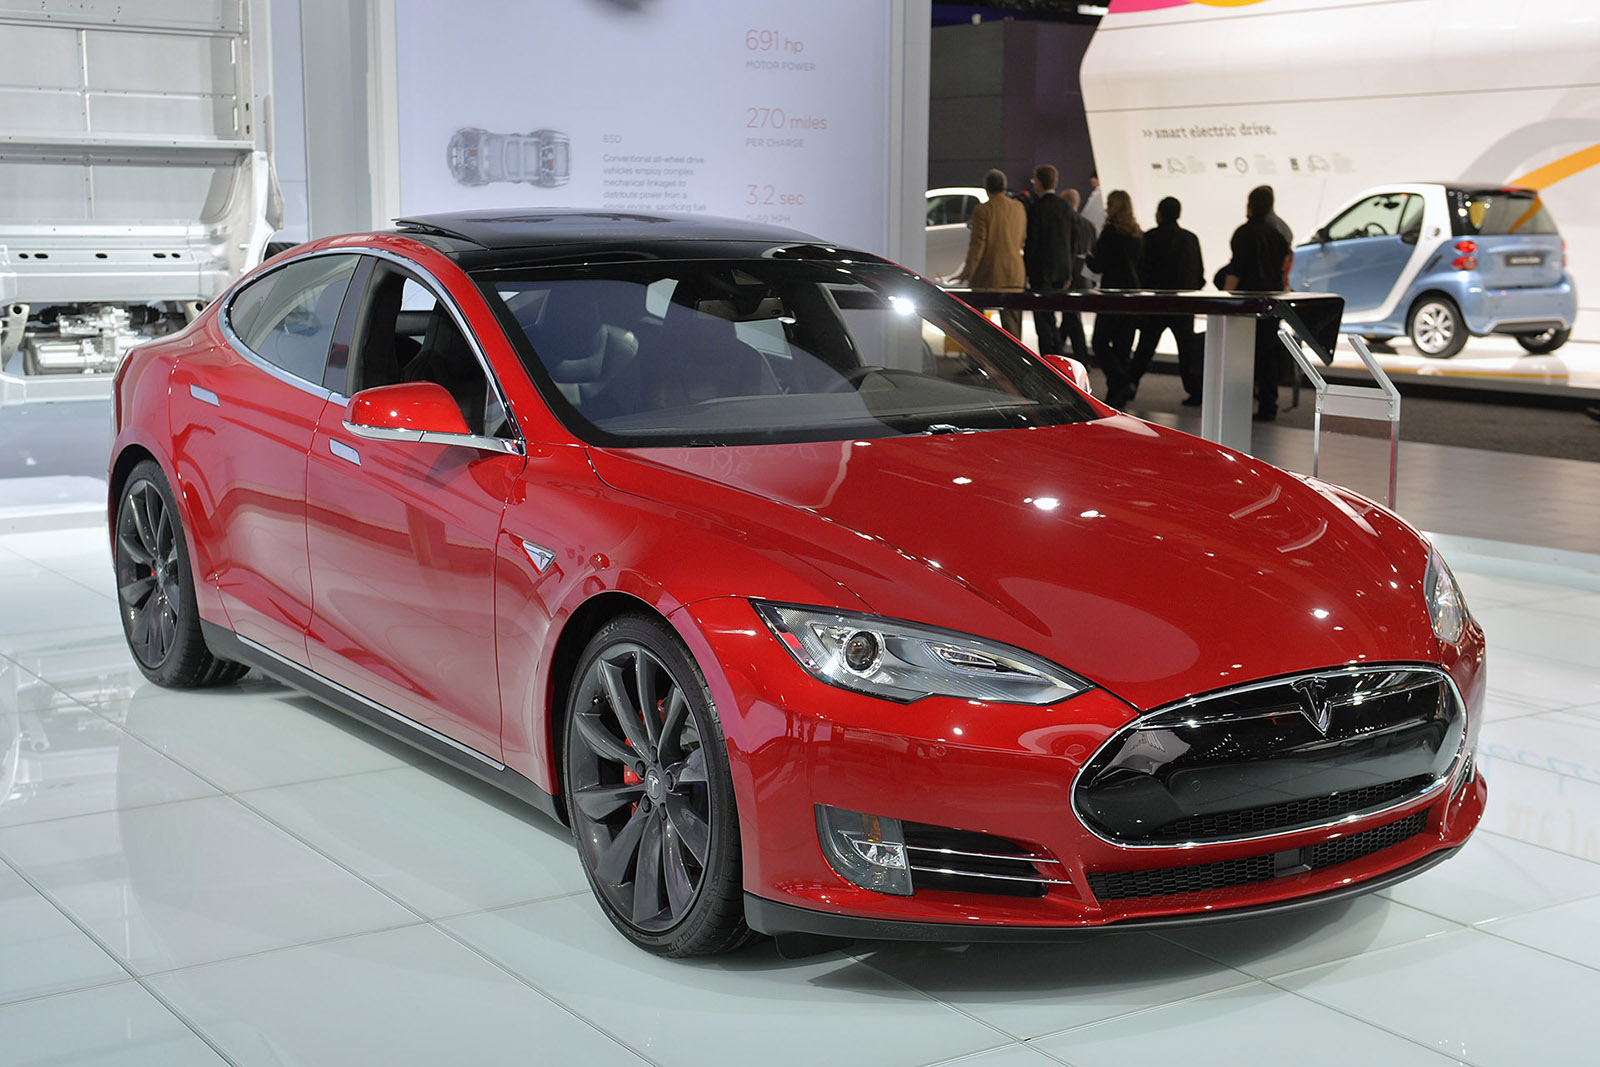 tesla s latest electric vehicle is the 35 000 model 3 pre orders begin march 31 techgage. Black Bedroom Furniture Sets. Home Design Ideas